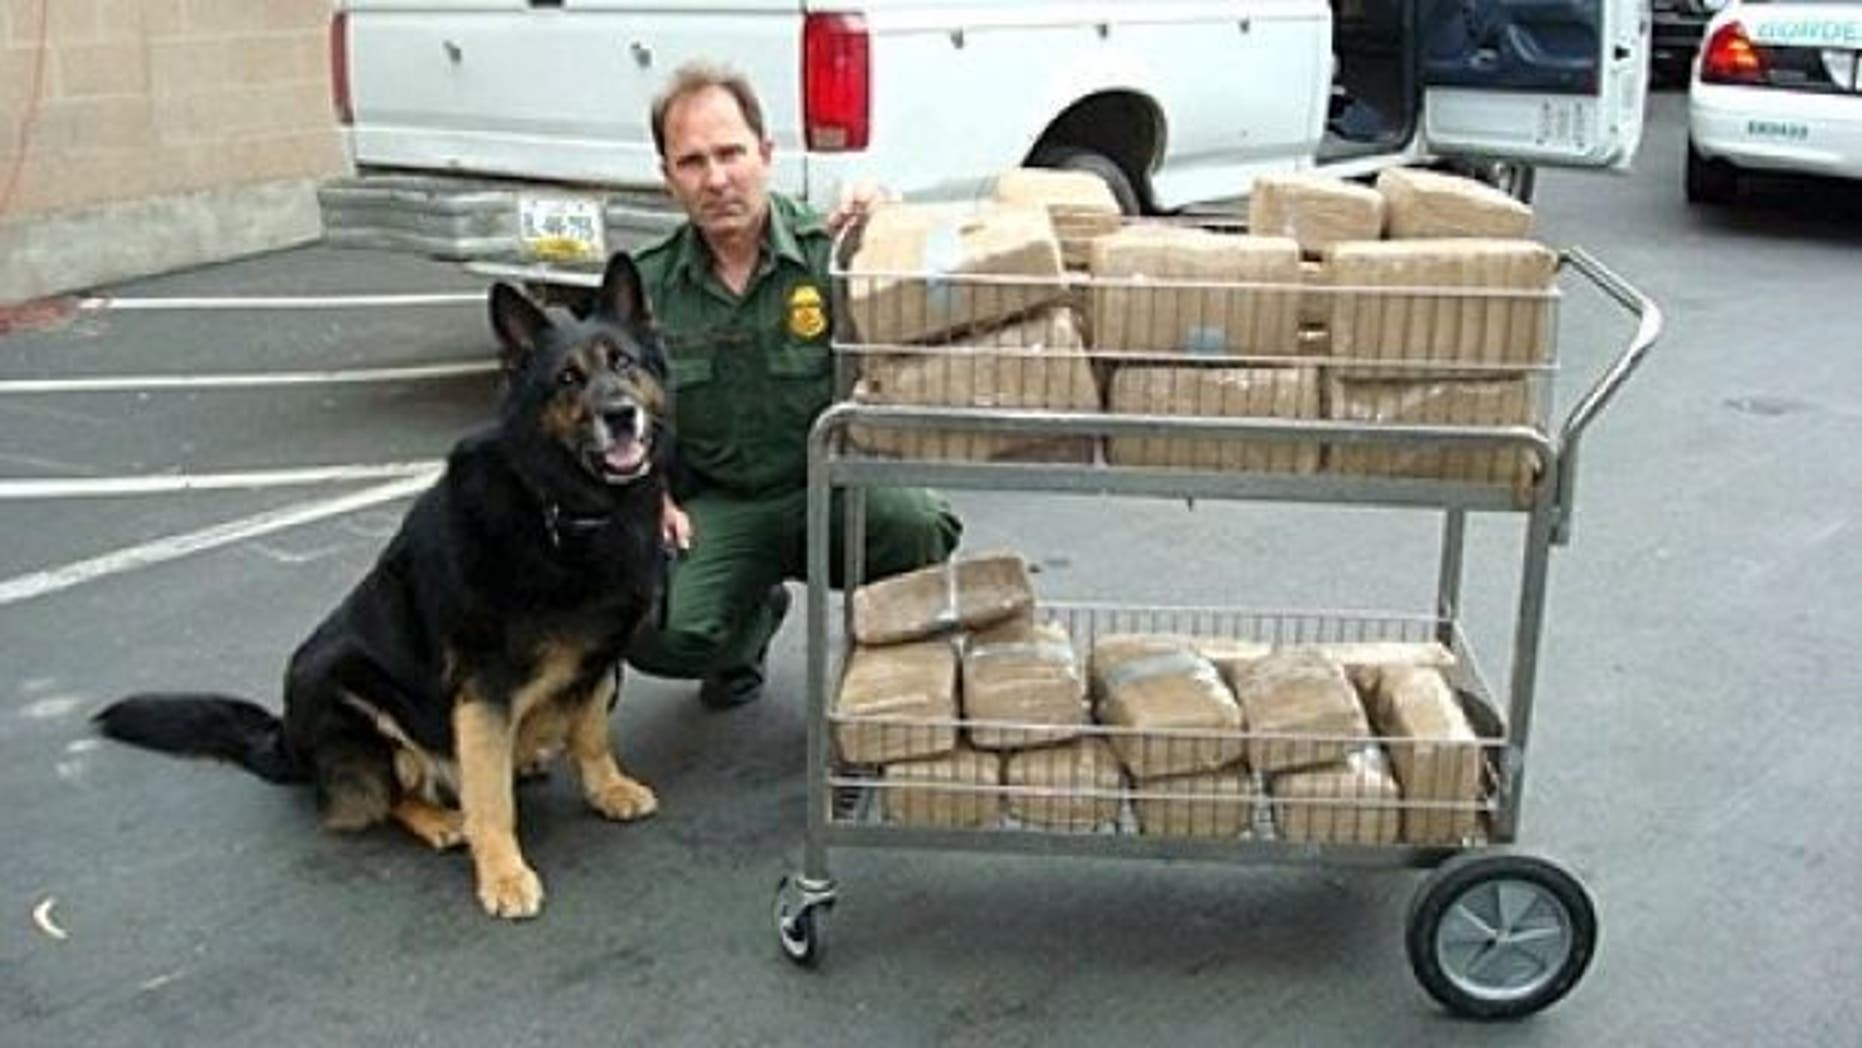 Supervisory Border Patrol Agent Peter Dame with K-9 Don.